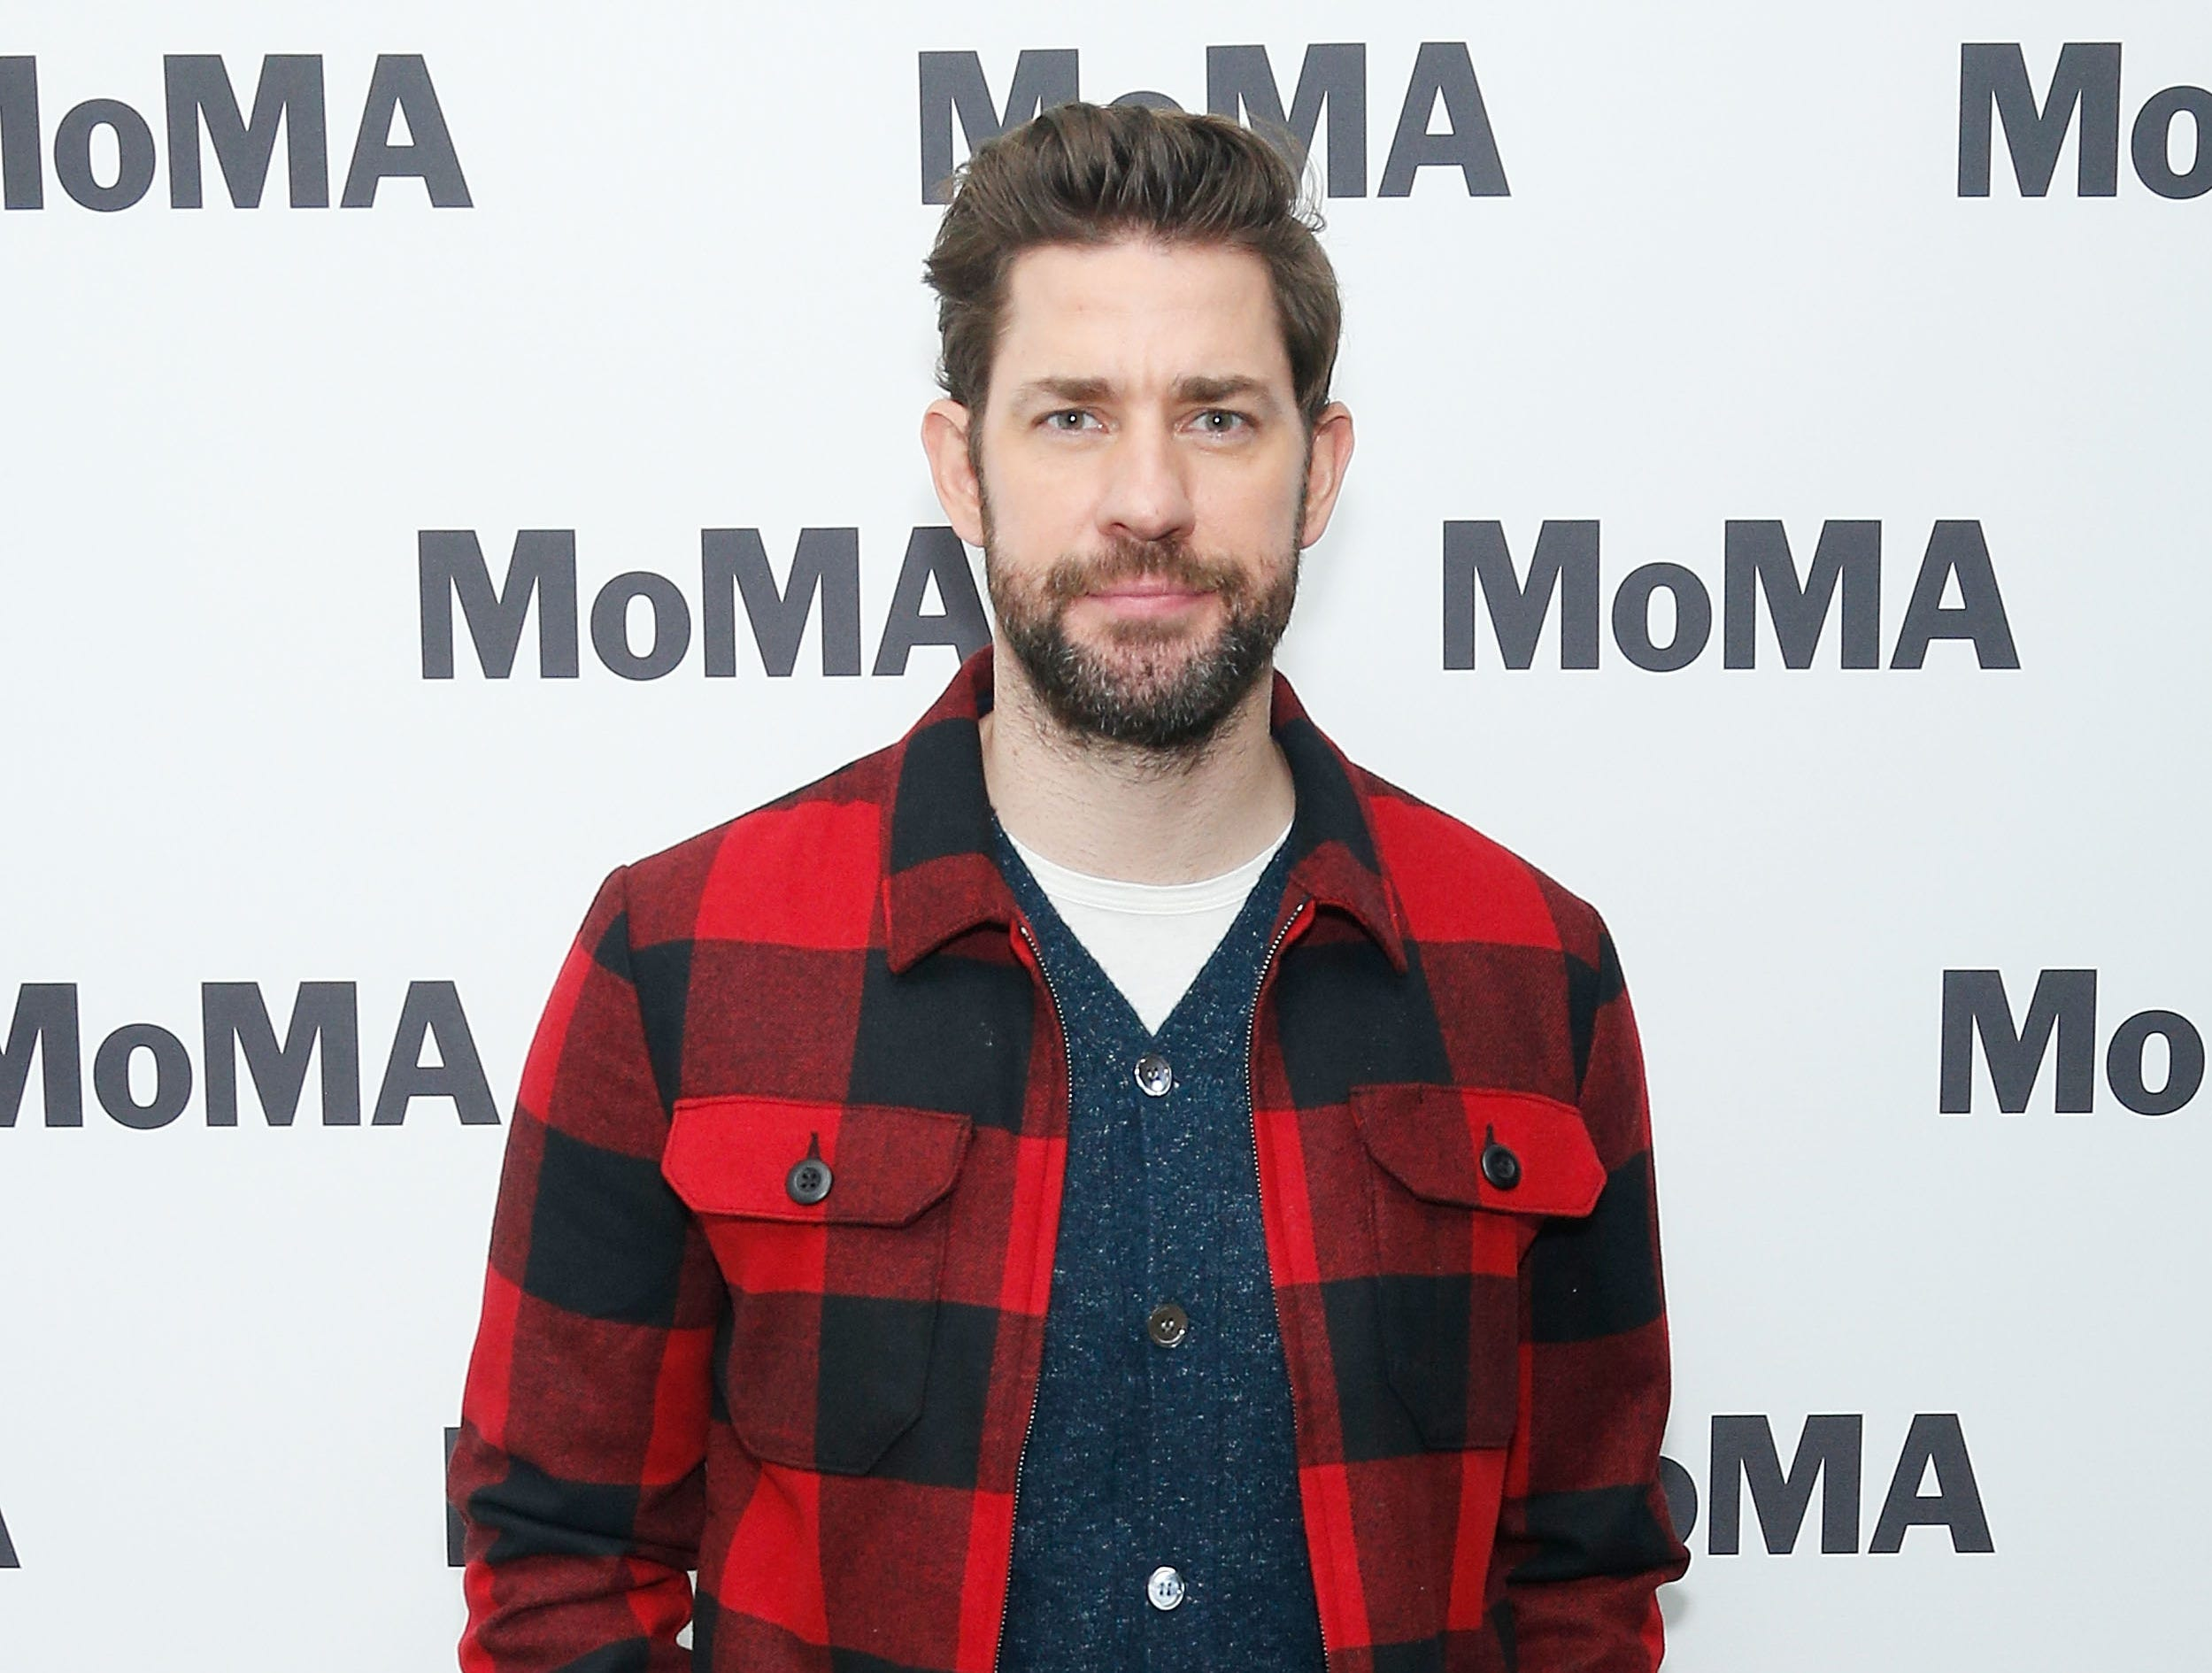 """NEW YORK, NY - DECEMBER 16:  Writer, director, producer and actor John Krasinski attends MoMA's Contenders screening of """"A Quiet Place"""" at MoMA Titus One on December 16, 2018 in New York City.  (Photo by Lars Niki/Getty Images for MoMA The Contenders) ORG XMIT: 775251415 ORIG FILE ID: 1074301288"""